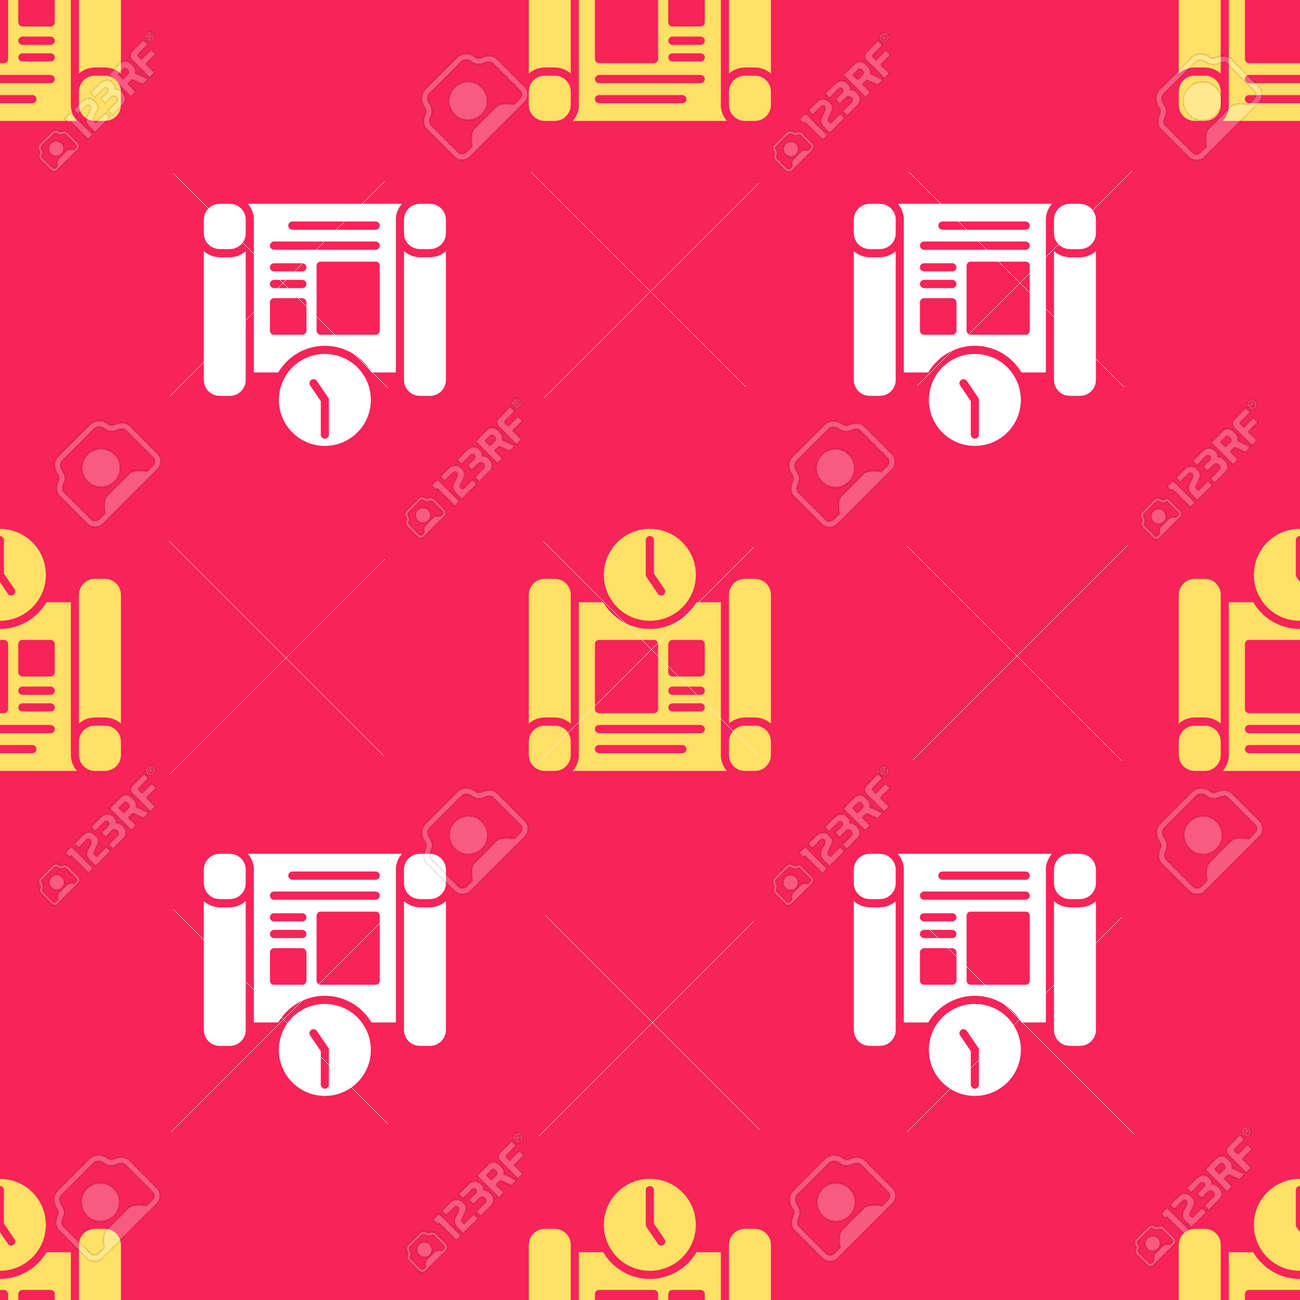 Yellow Business project time plan icon isolated seamless pattern on red background. Vector - 170180410